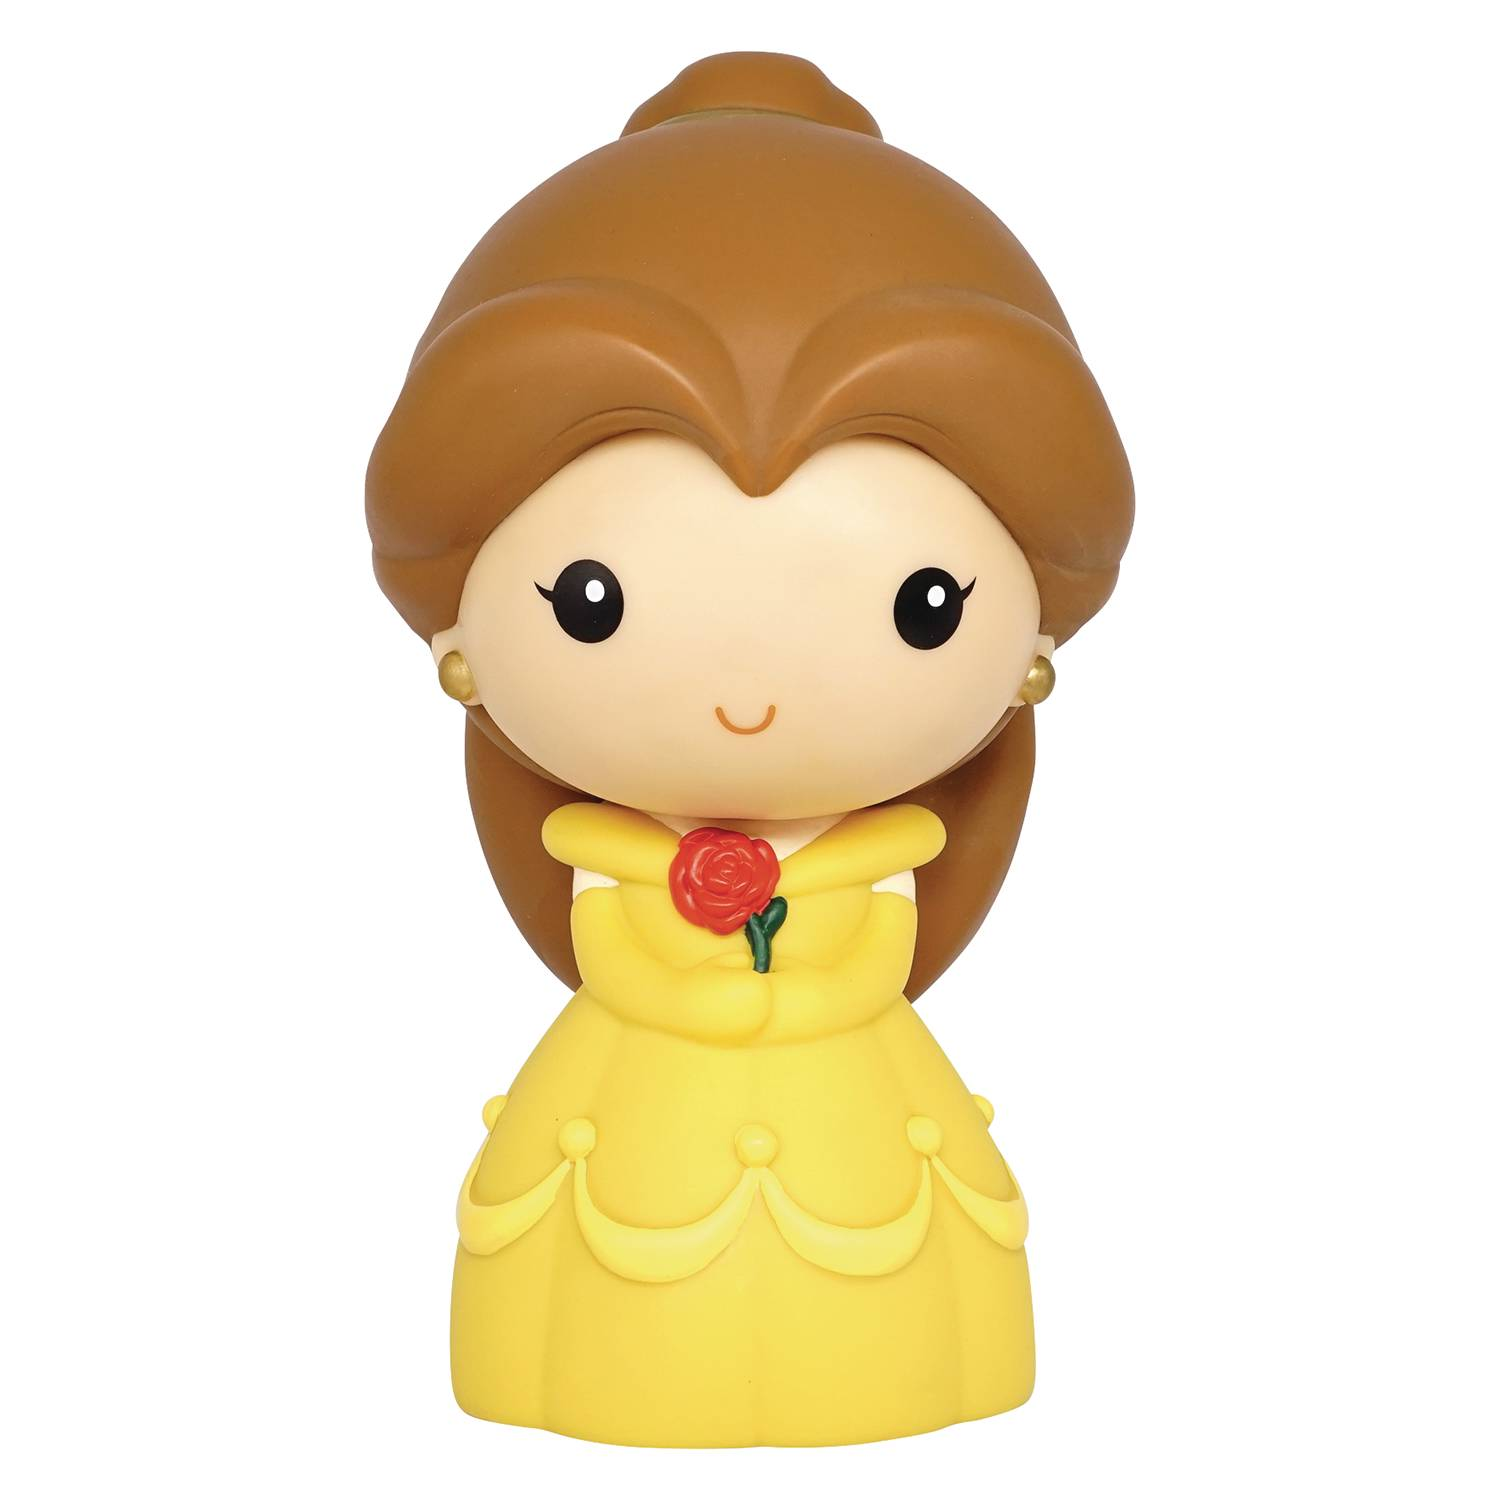 BEAUTY AND THE BEAST PRINCESS BELLE PVC BANK